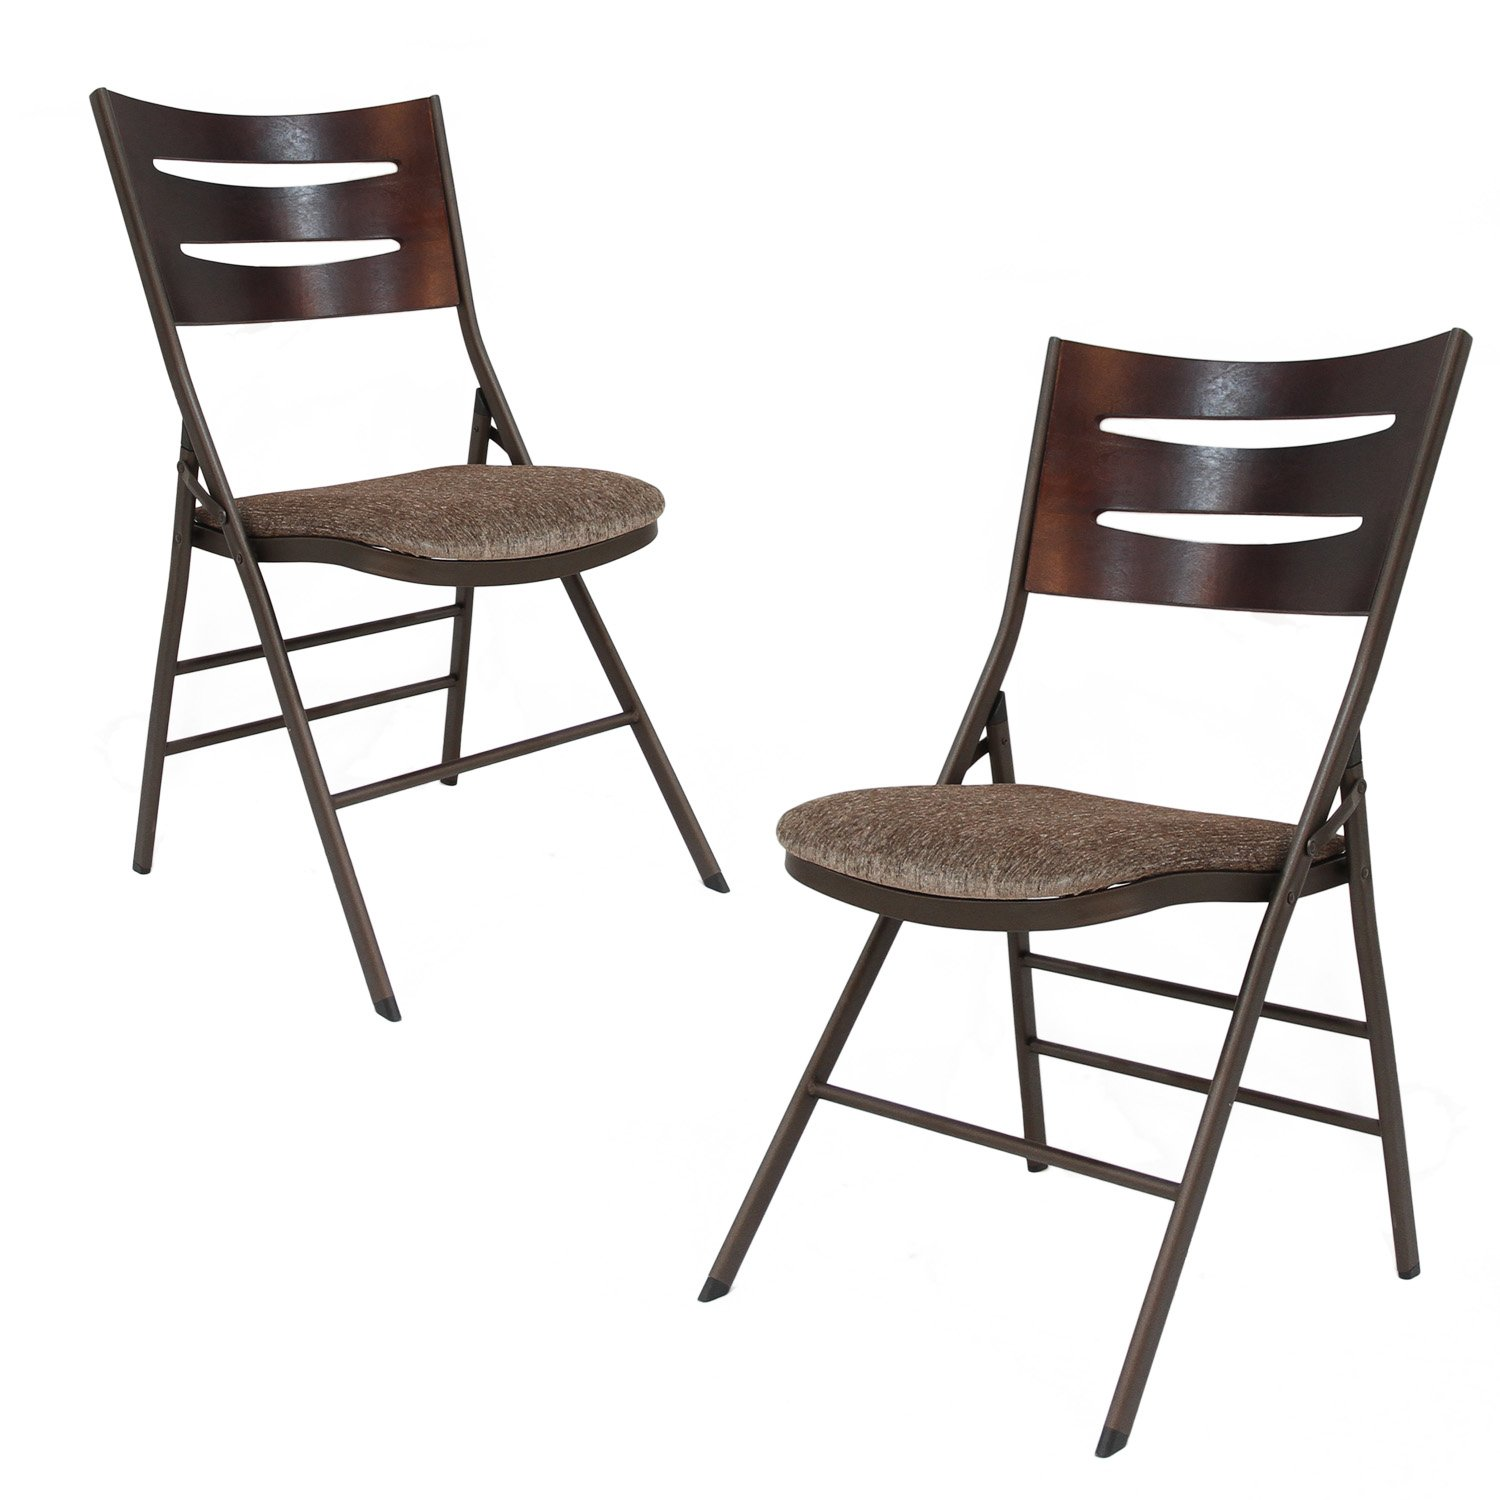 Adeco Powder Coated Steel Portable Folding Chair - Brown - Seat Height 18 Inch - Set of 2